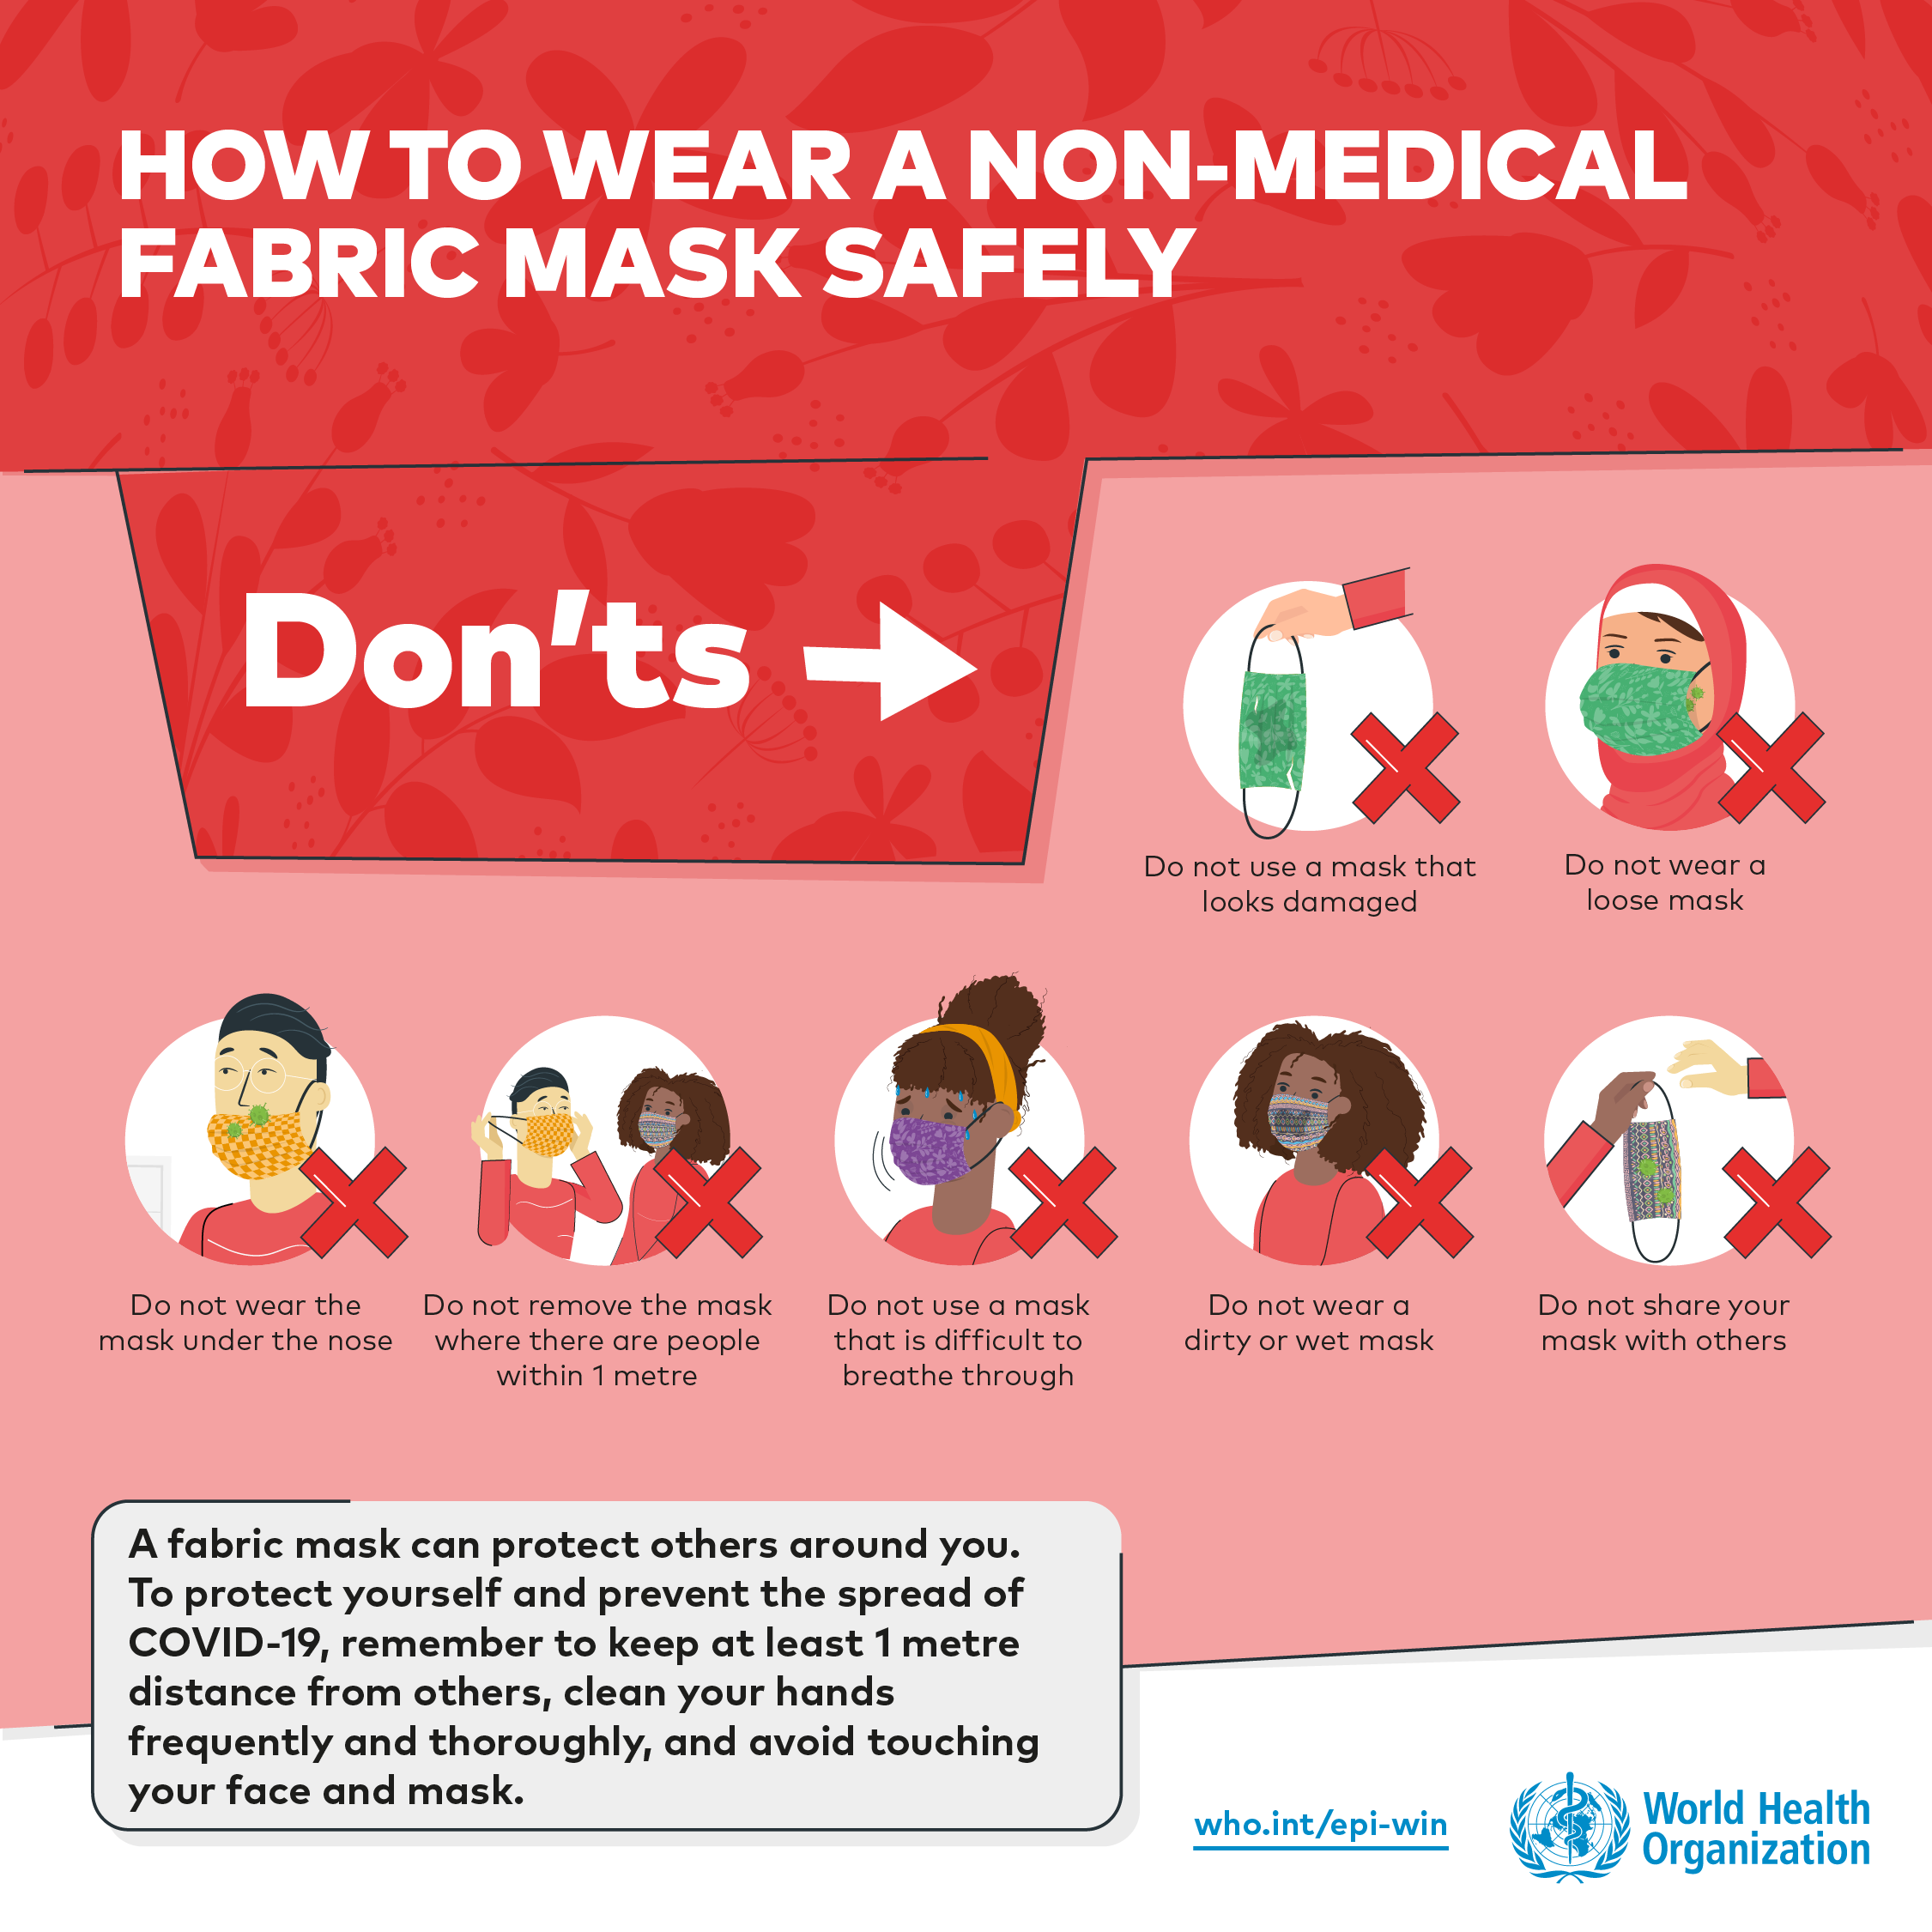 How to wear a non-medical fabric mask safely: The Don'ts